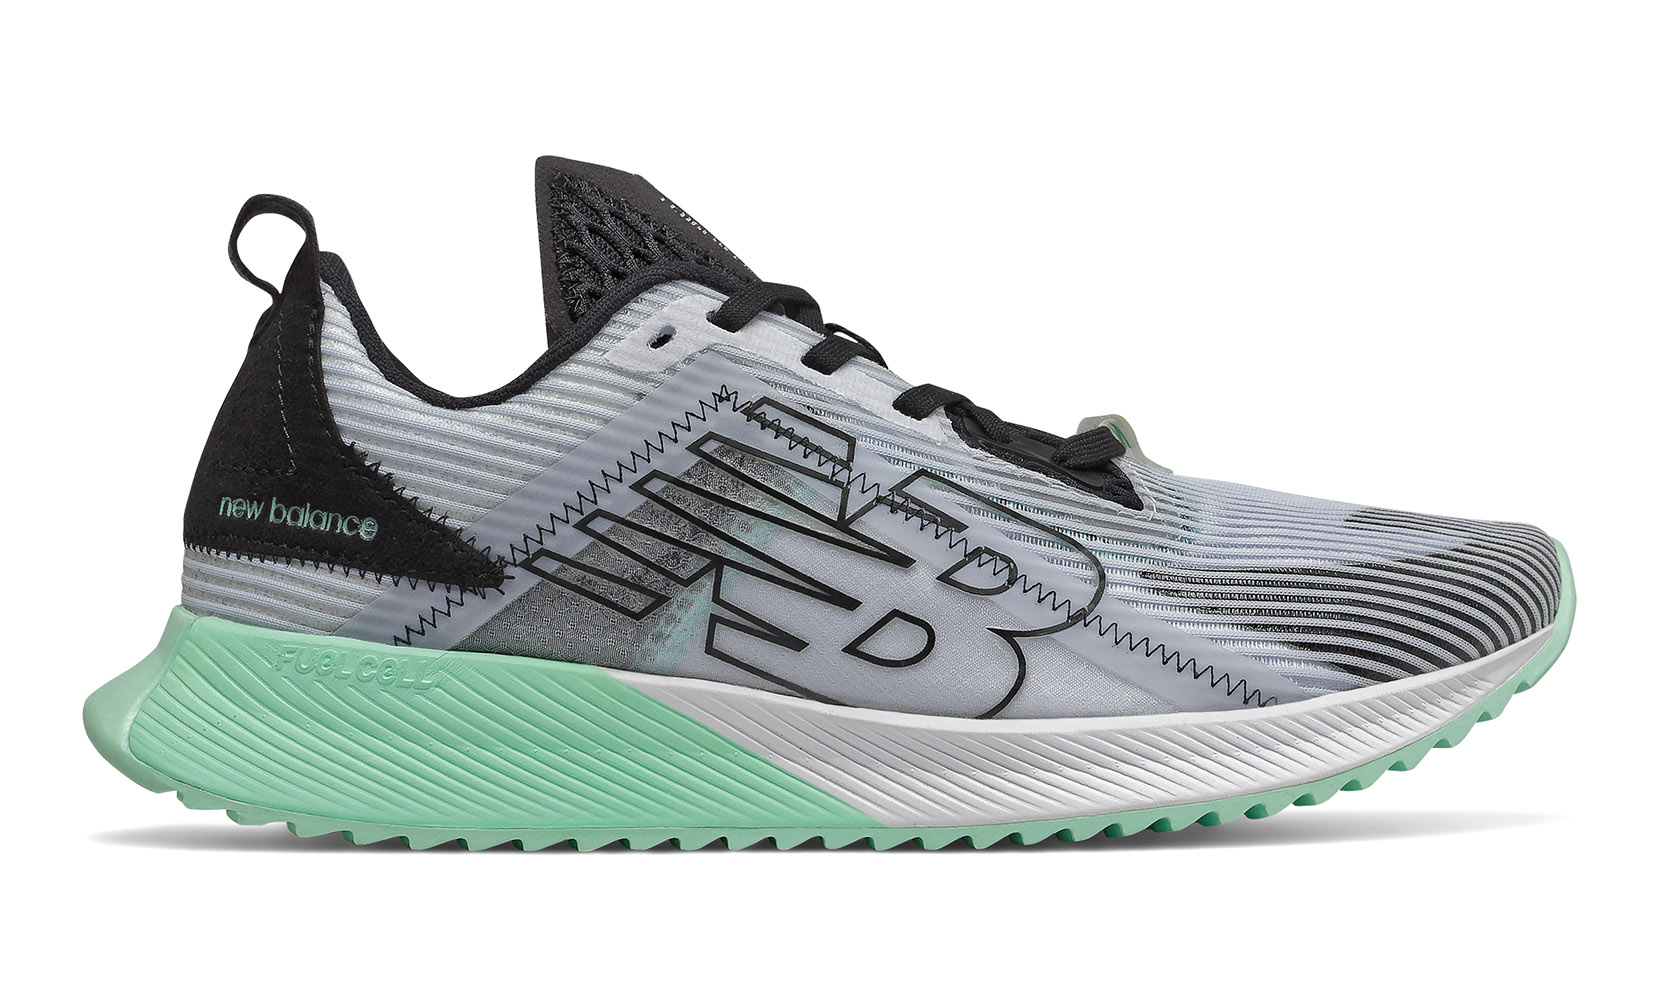 Жіноче взуття для бігу Fuel Cell Echo Echolucent WFCELLG | New Balance